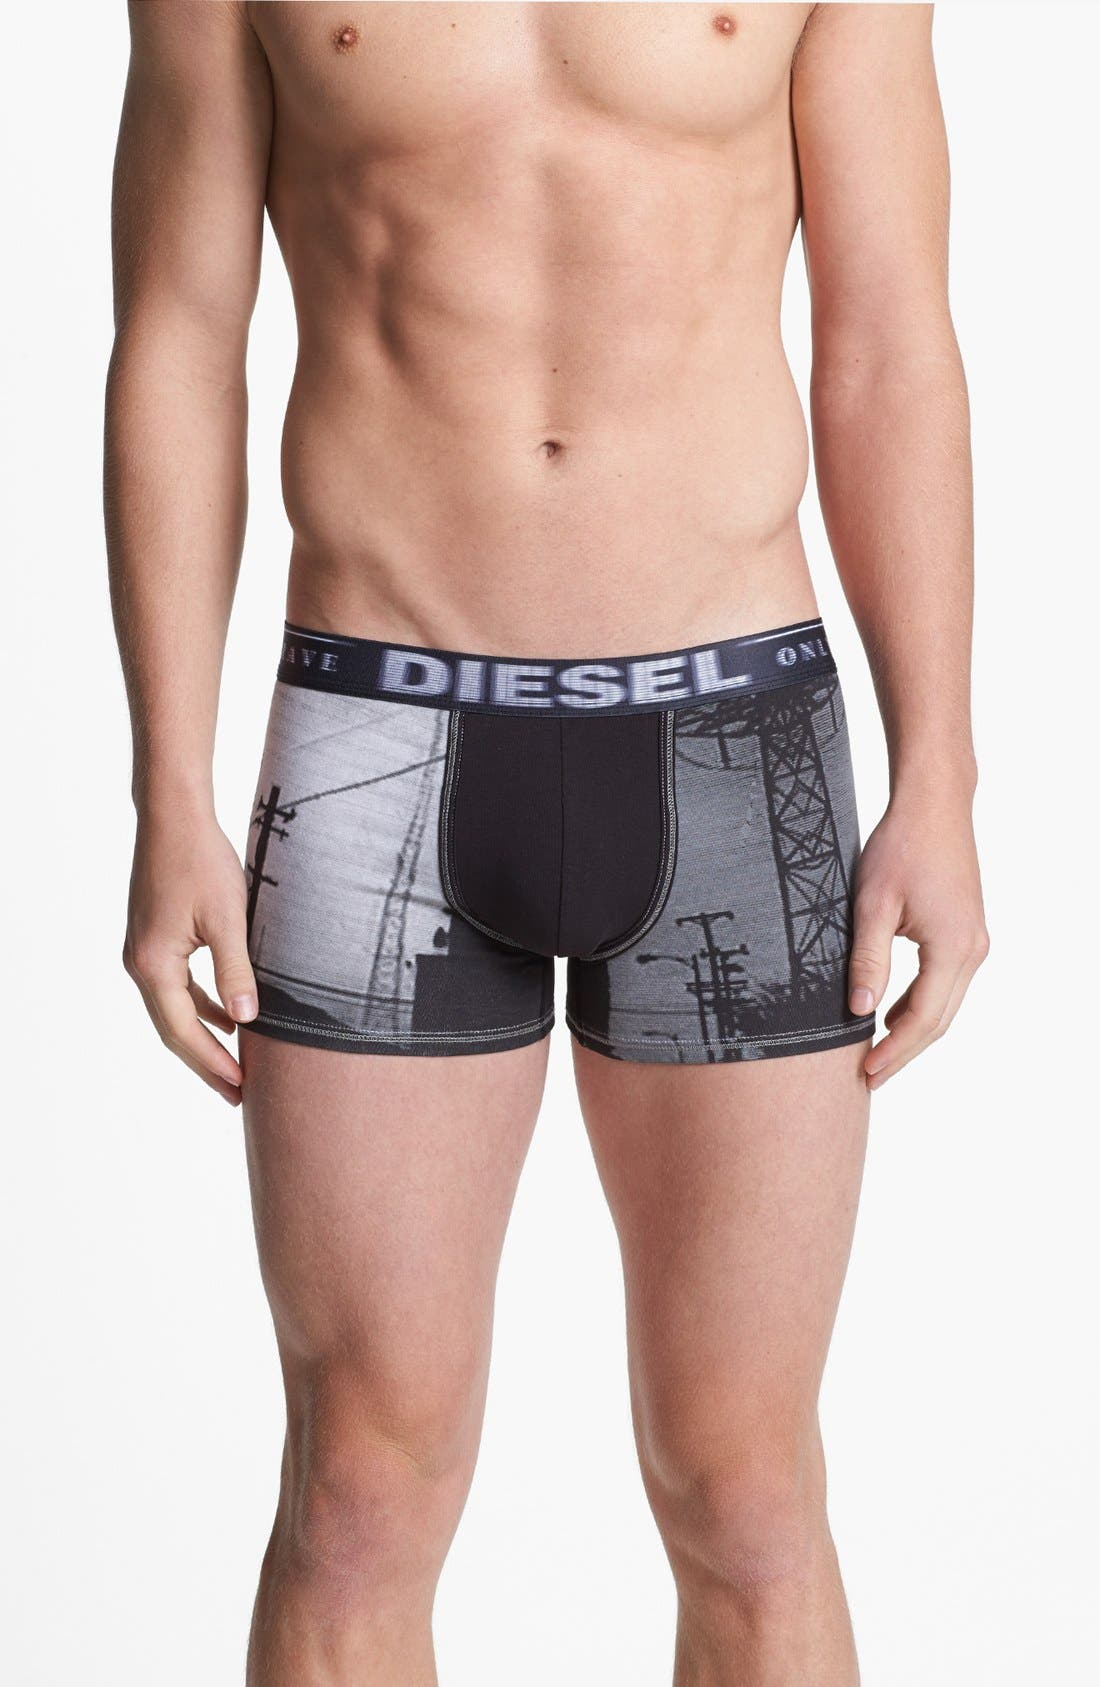 Alternate Image 1 Selected - DIESEL® 'Damien' Print Boxer Briefs